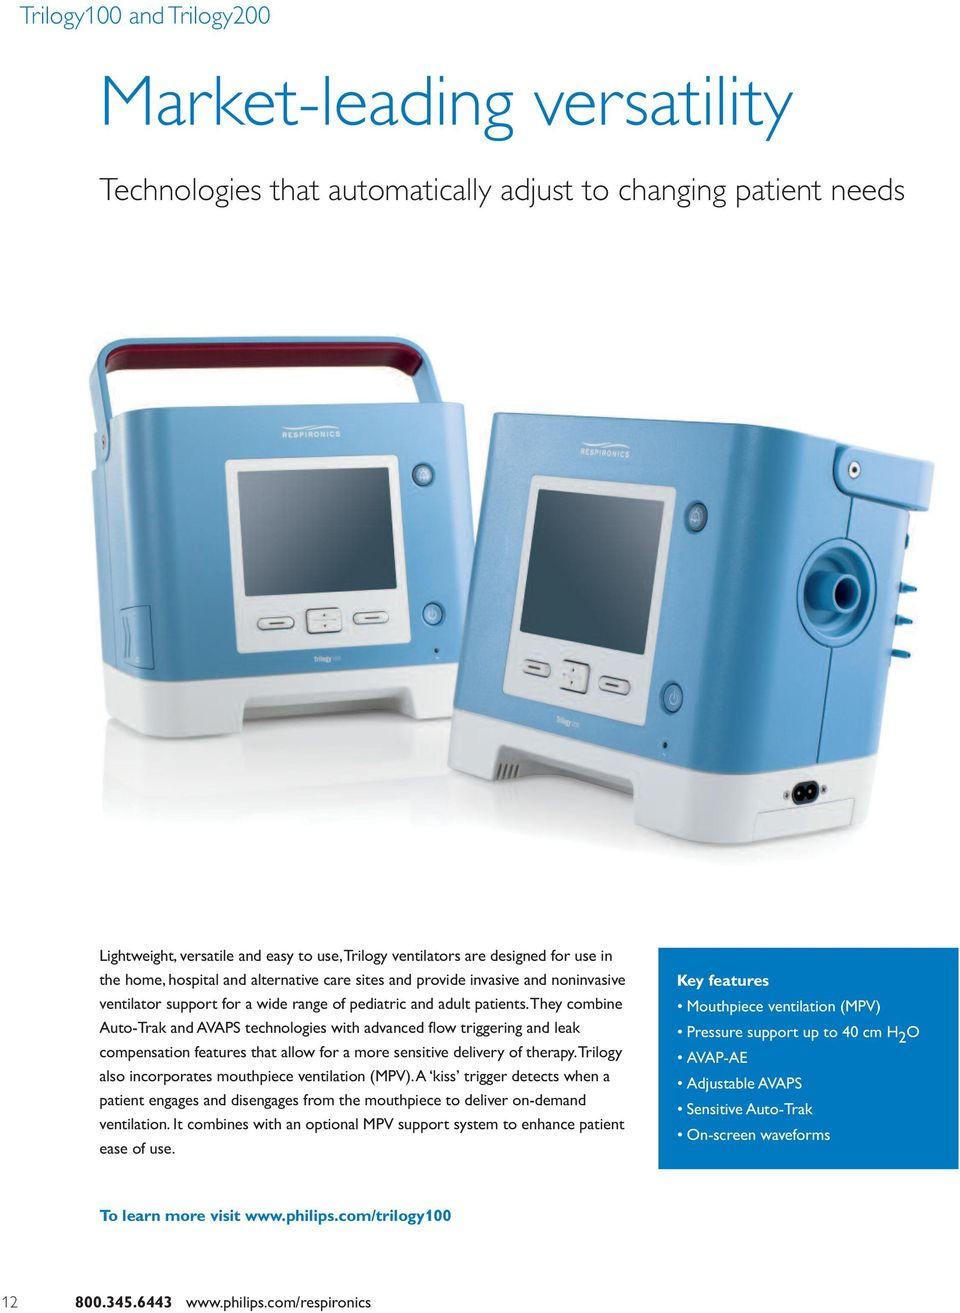 They combine Auto-Trak and AVAPS technologies with advanced flow triggering and leak compensation features that allow for a more sensitive delivery of therapy.